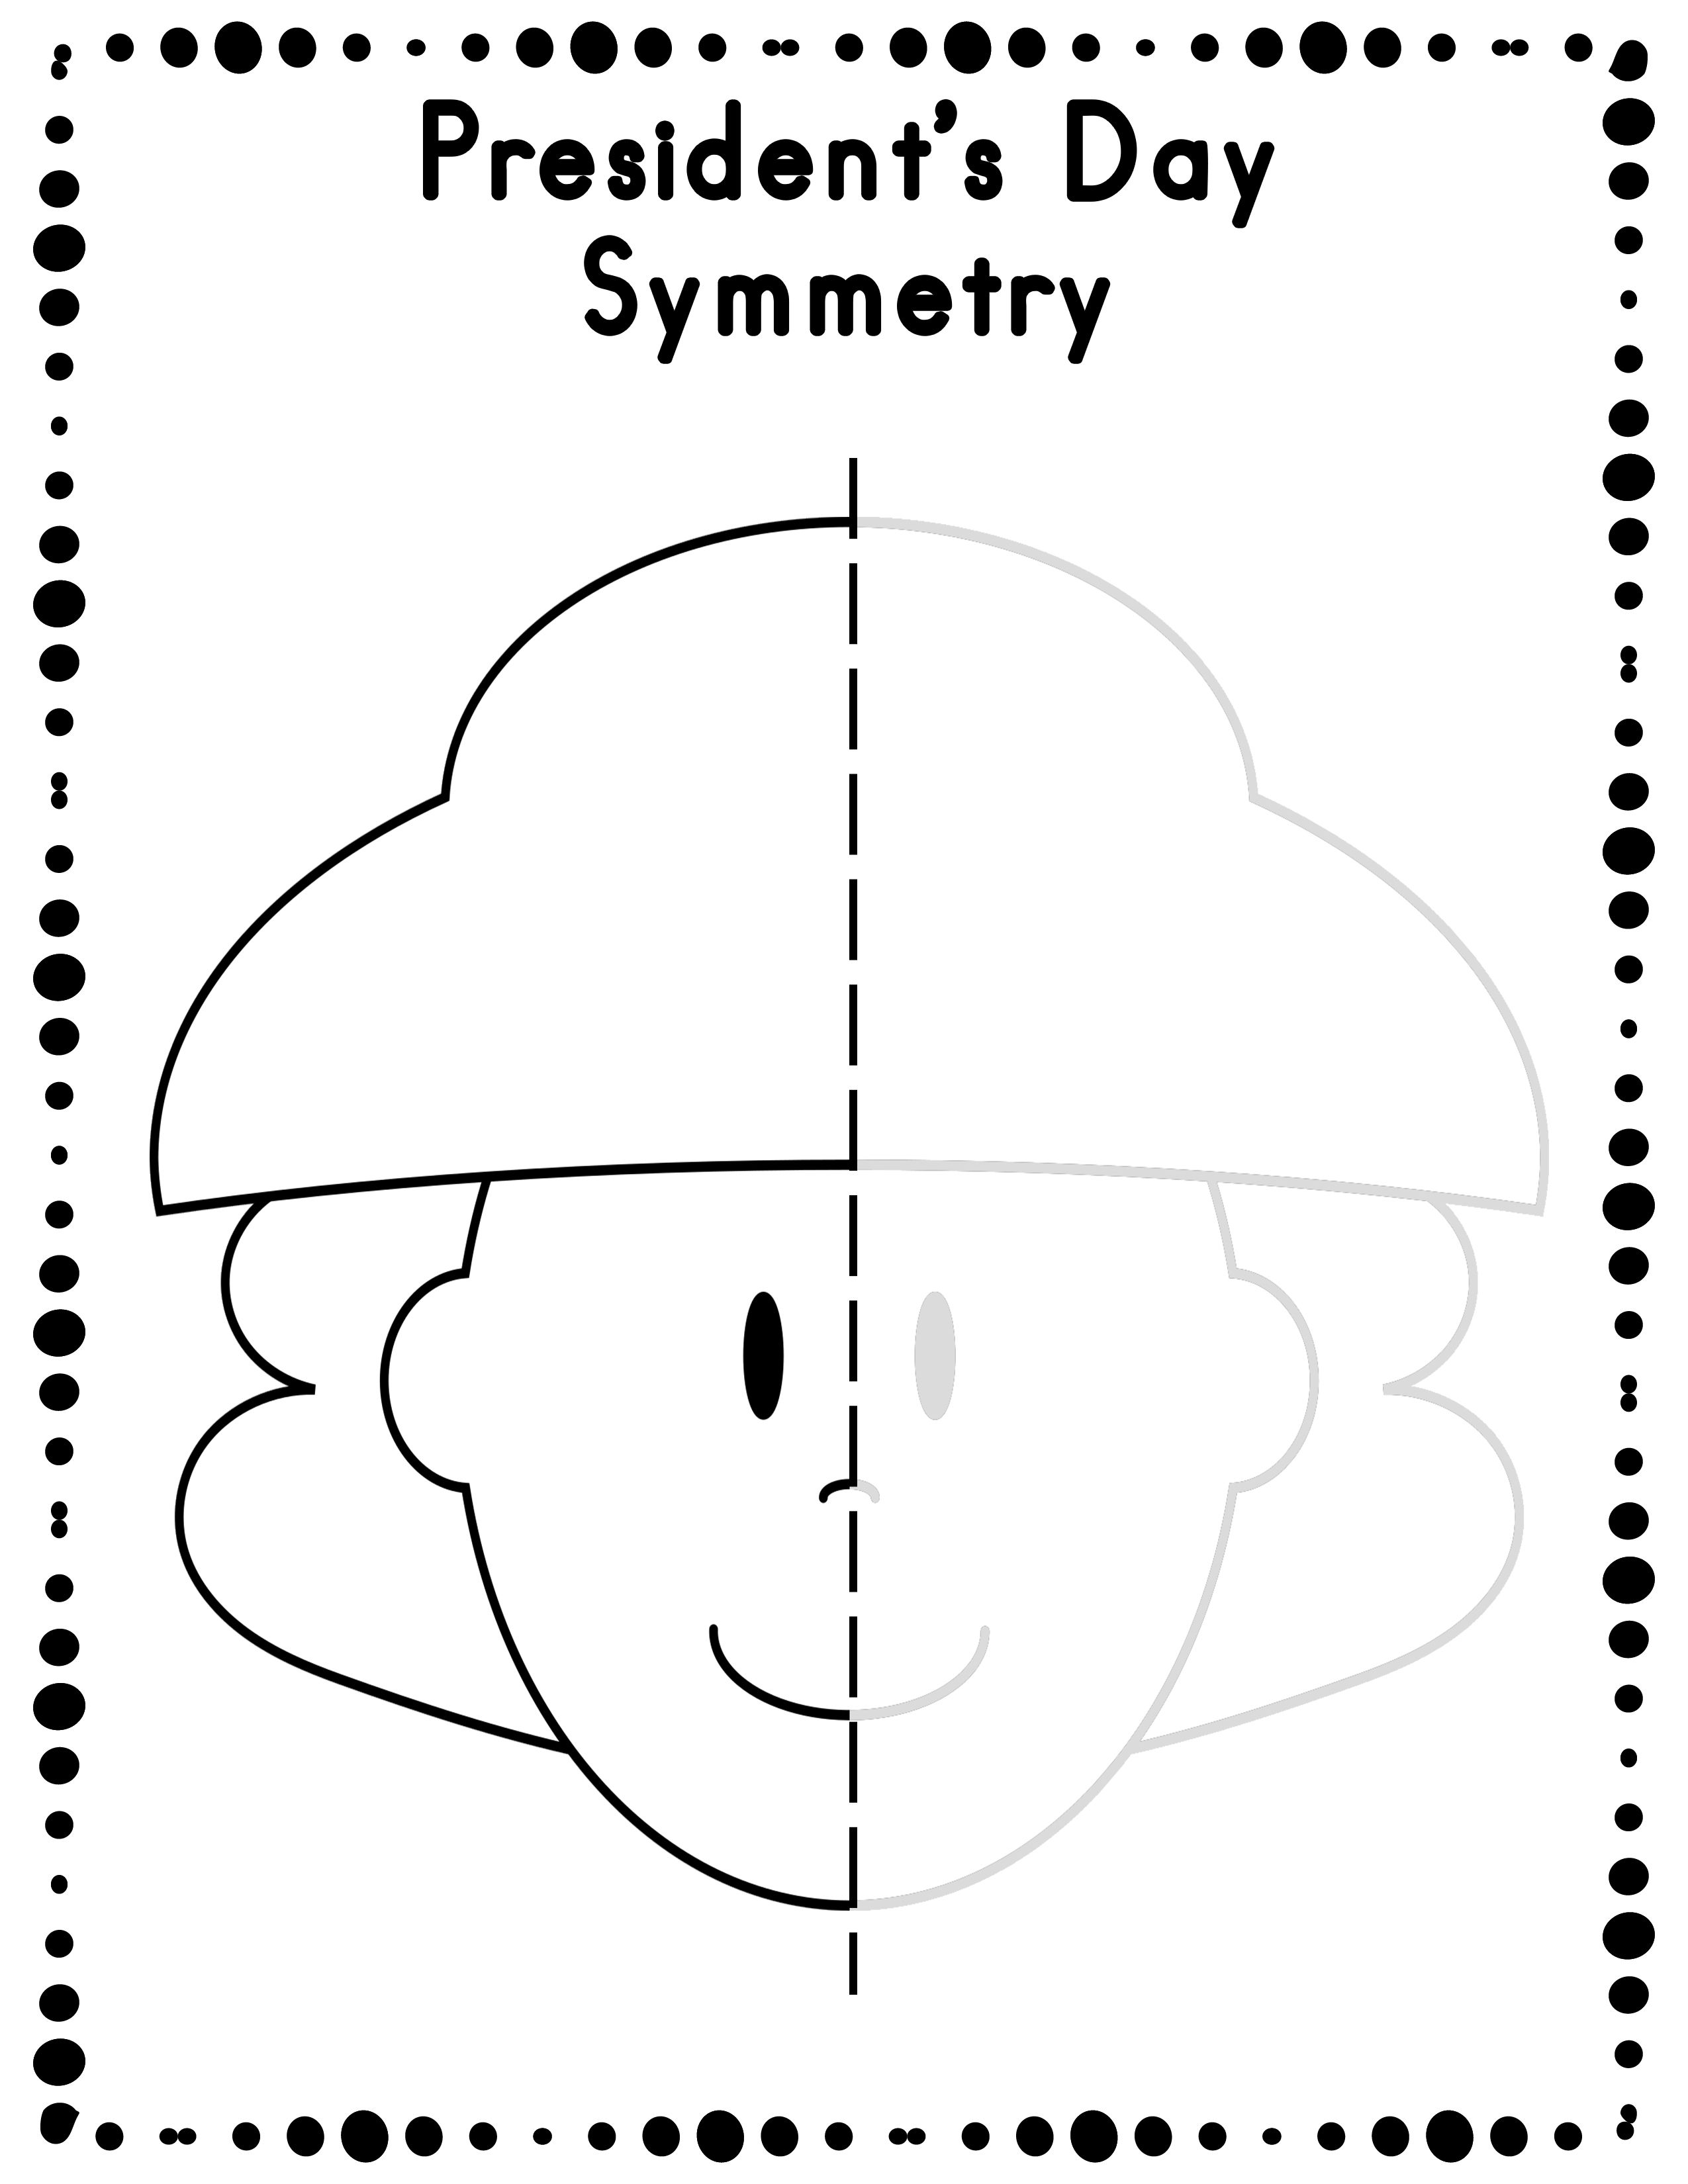 President S Day Symmetry Drawing Activity For Art And Math